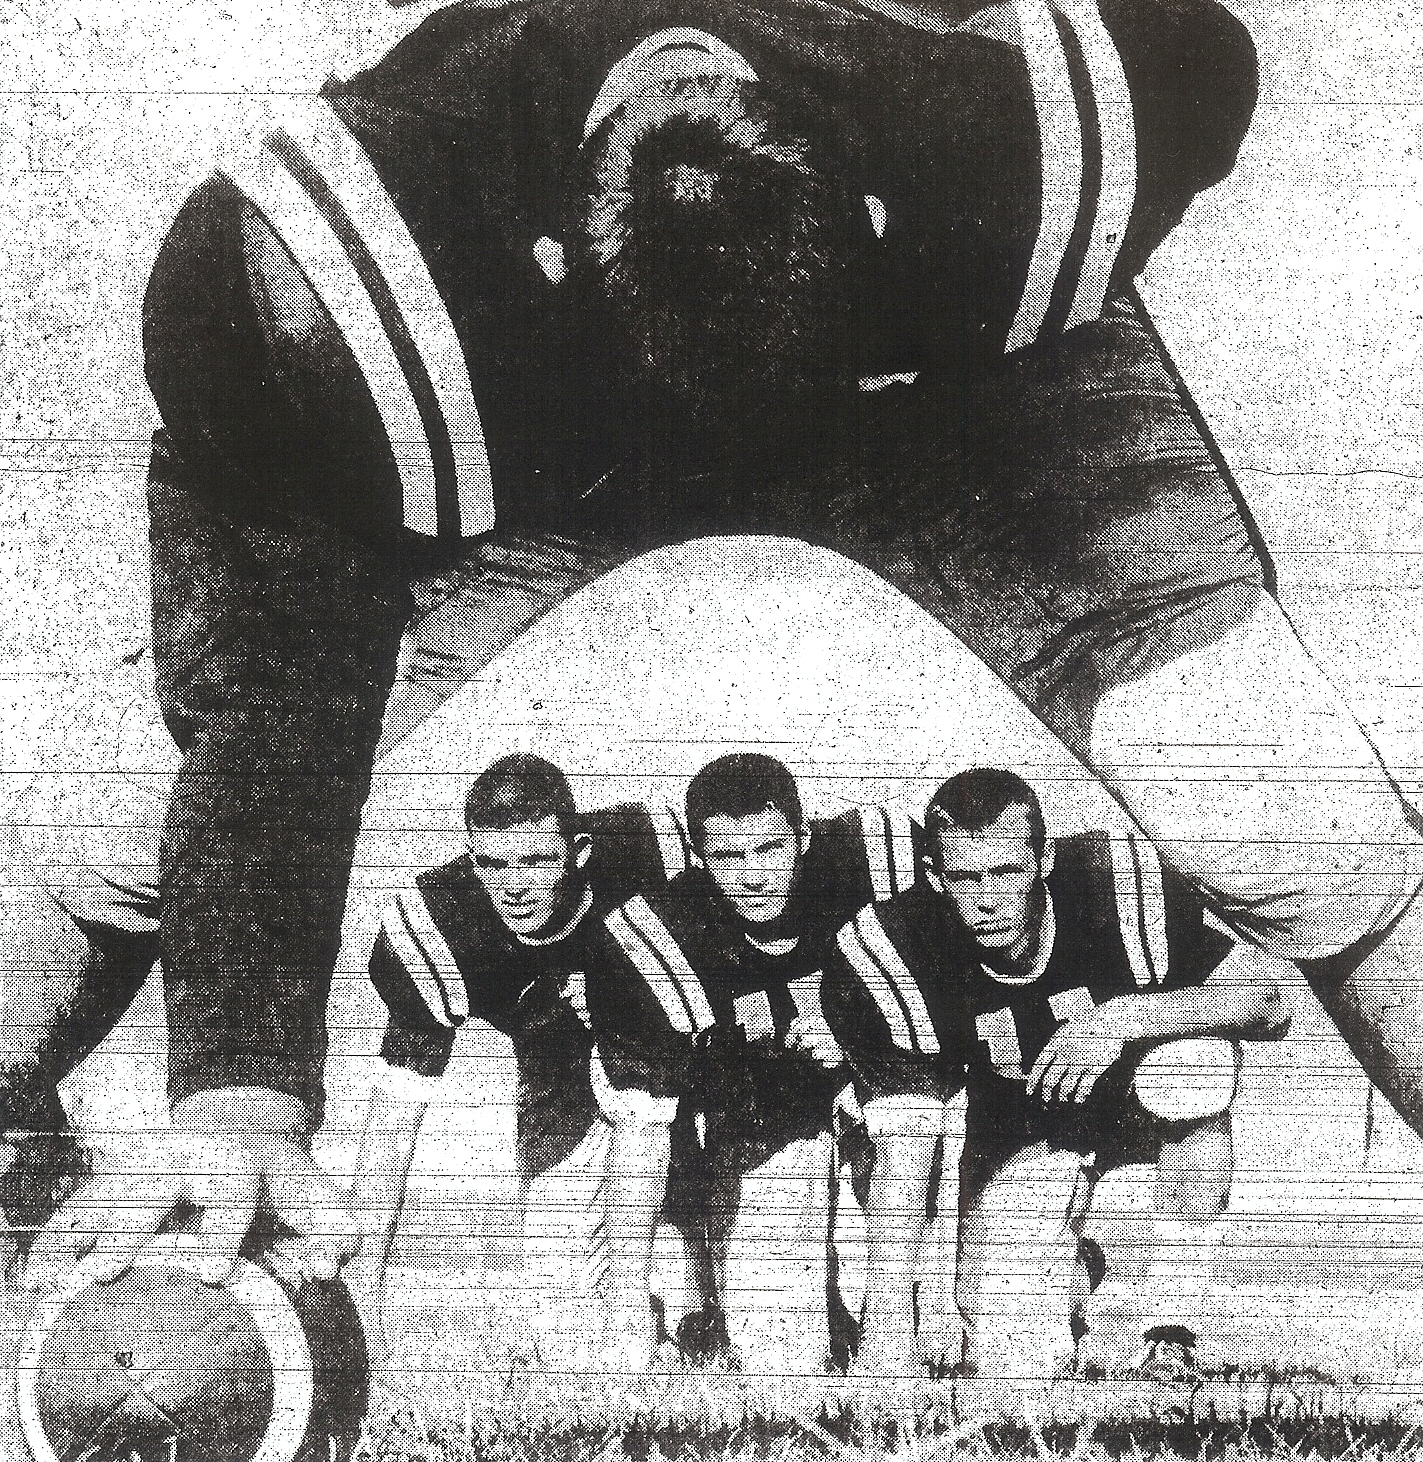 Sweetwater center Joe Wolf could snap ball to George McElvain, Larry Martin, and Jimmy King (from left).